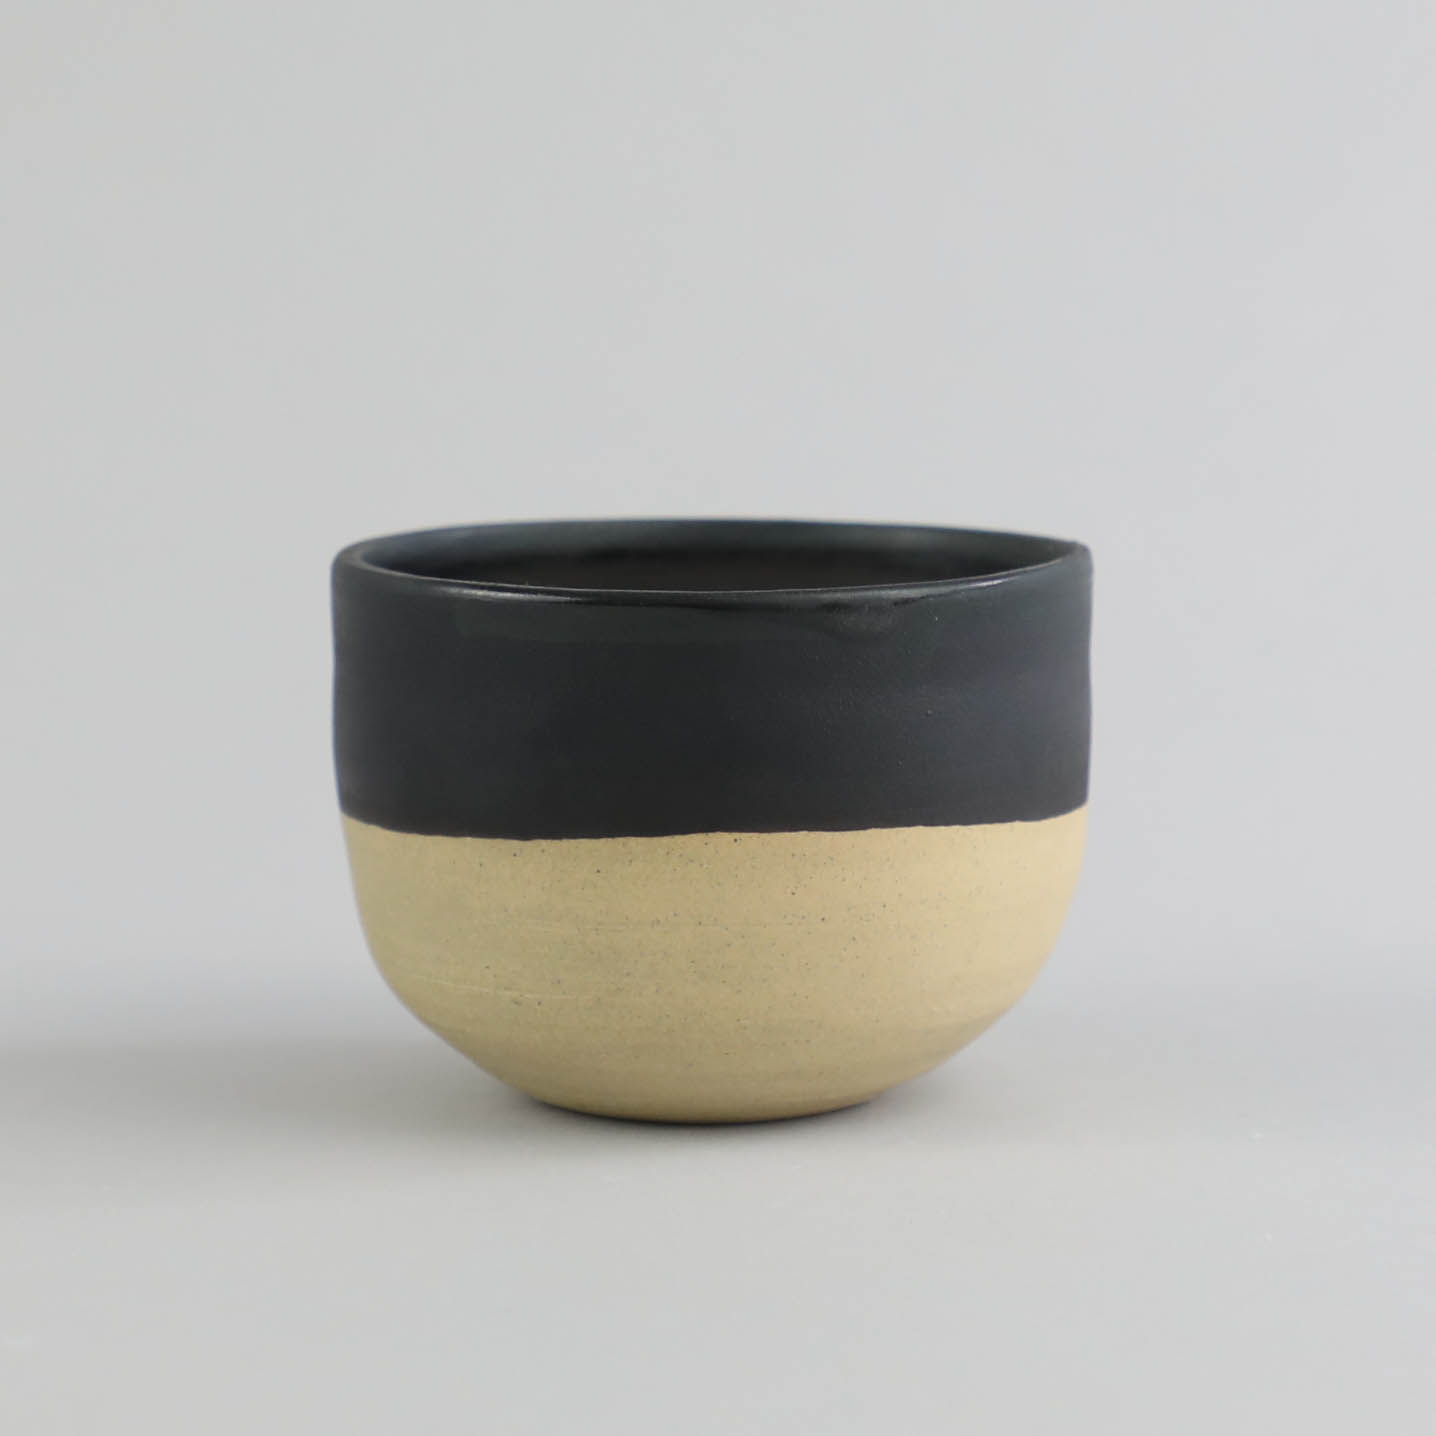 IN GOOD COMPANY x VES. Two-Tone Vessel w: Candle_6x8.5_Black_RP99_2.jpg